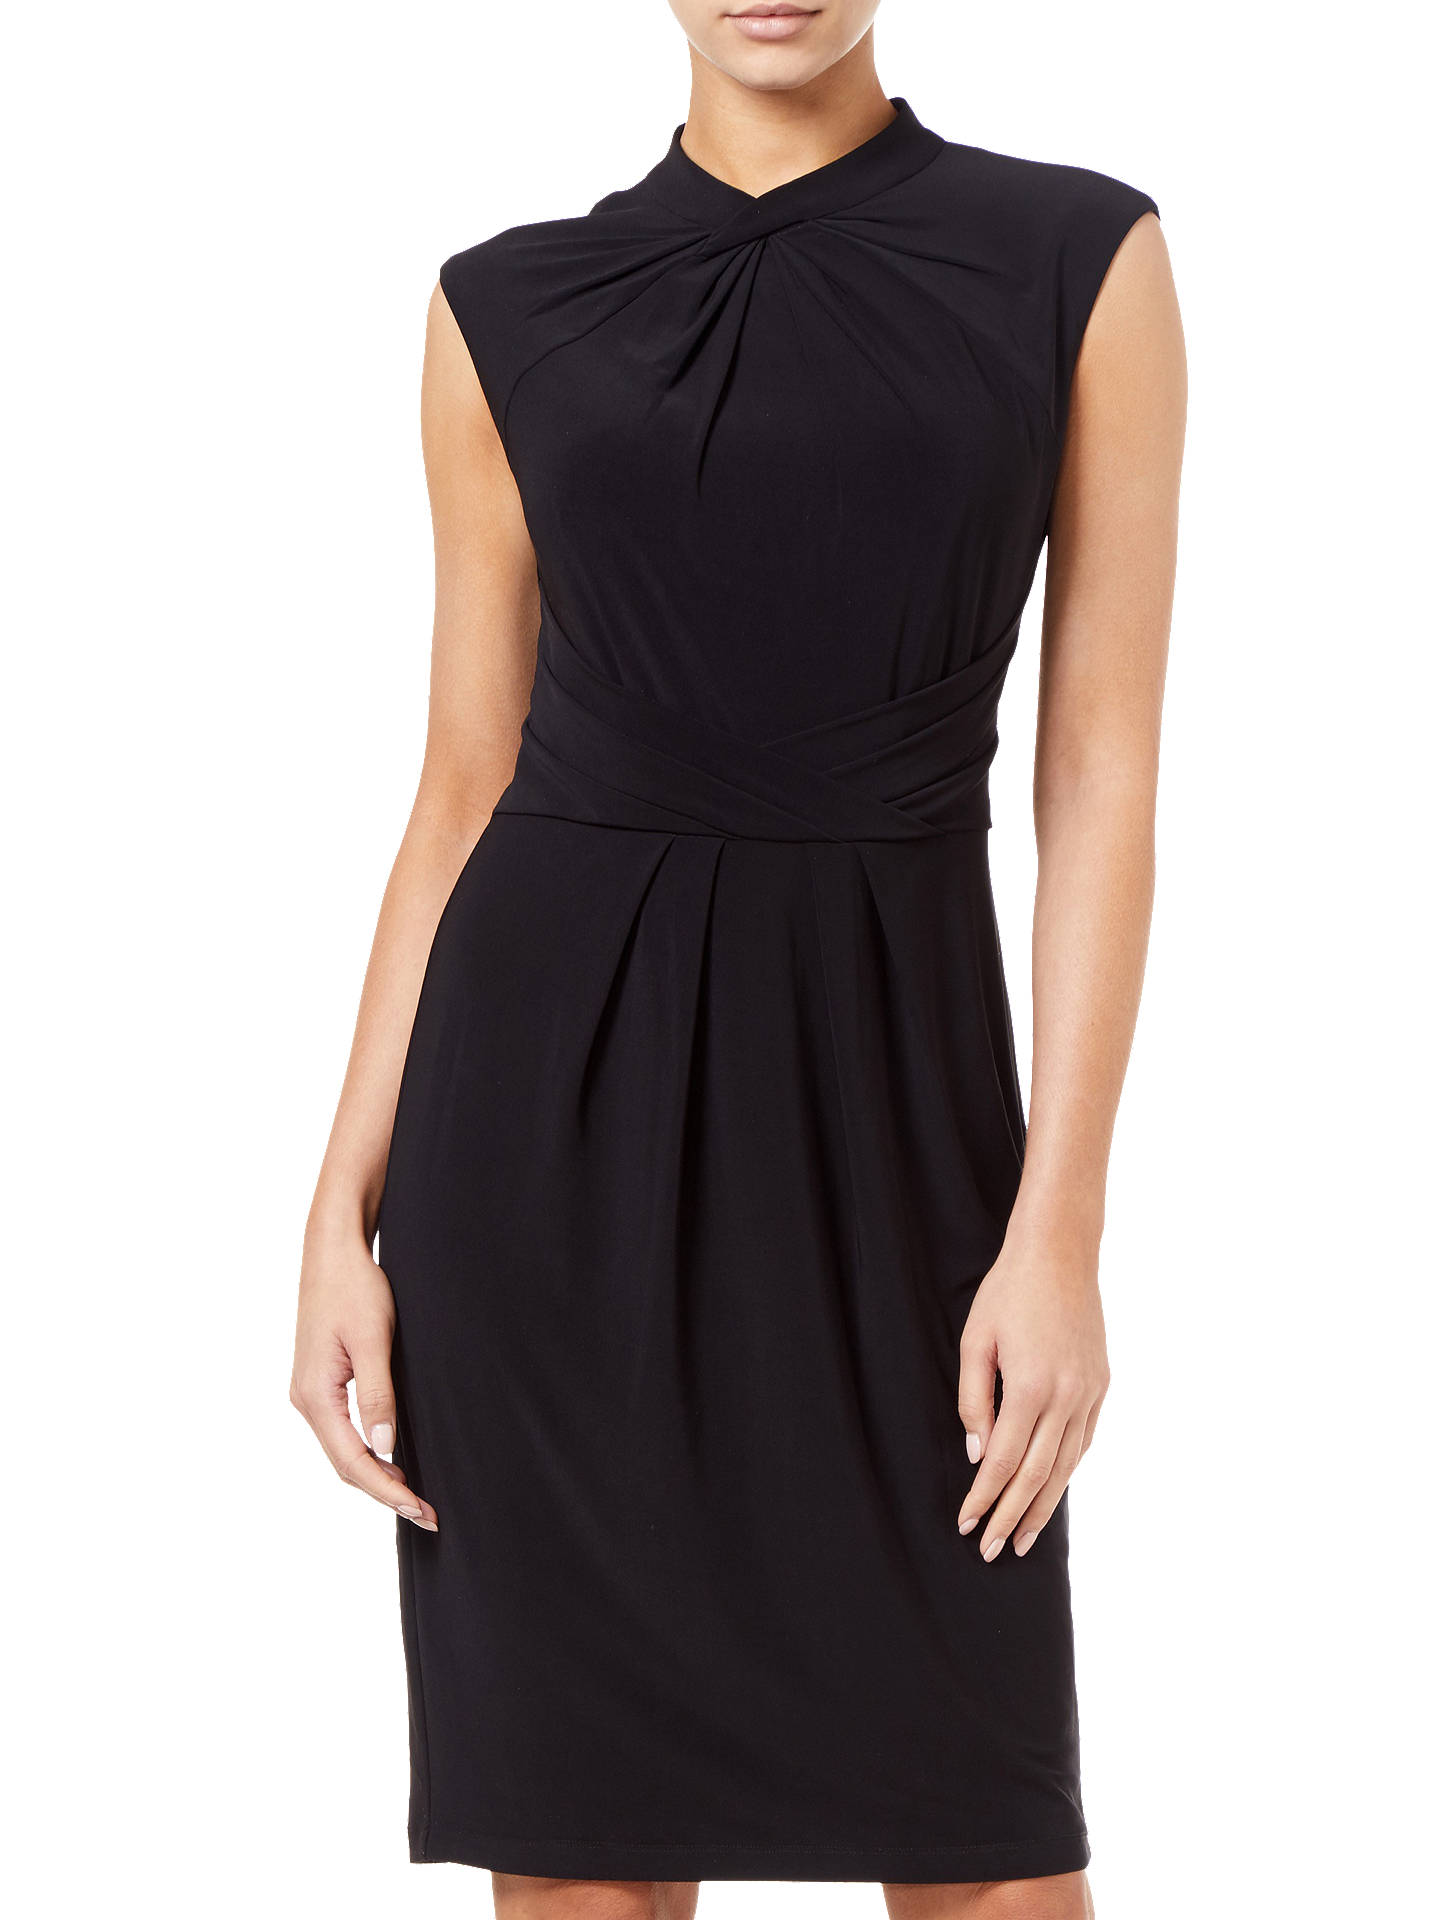 Buy Adrianna Papell Matte Jersey Gather Detail Sheath Dress, Black, 6 Online at johnlewis.com